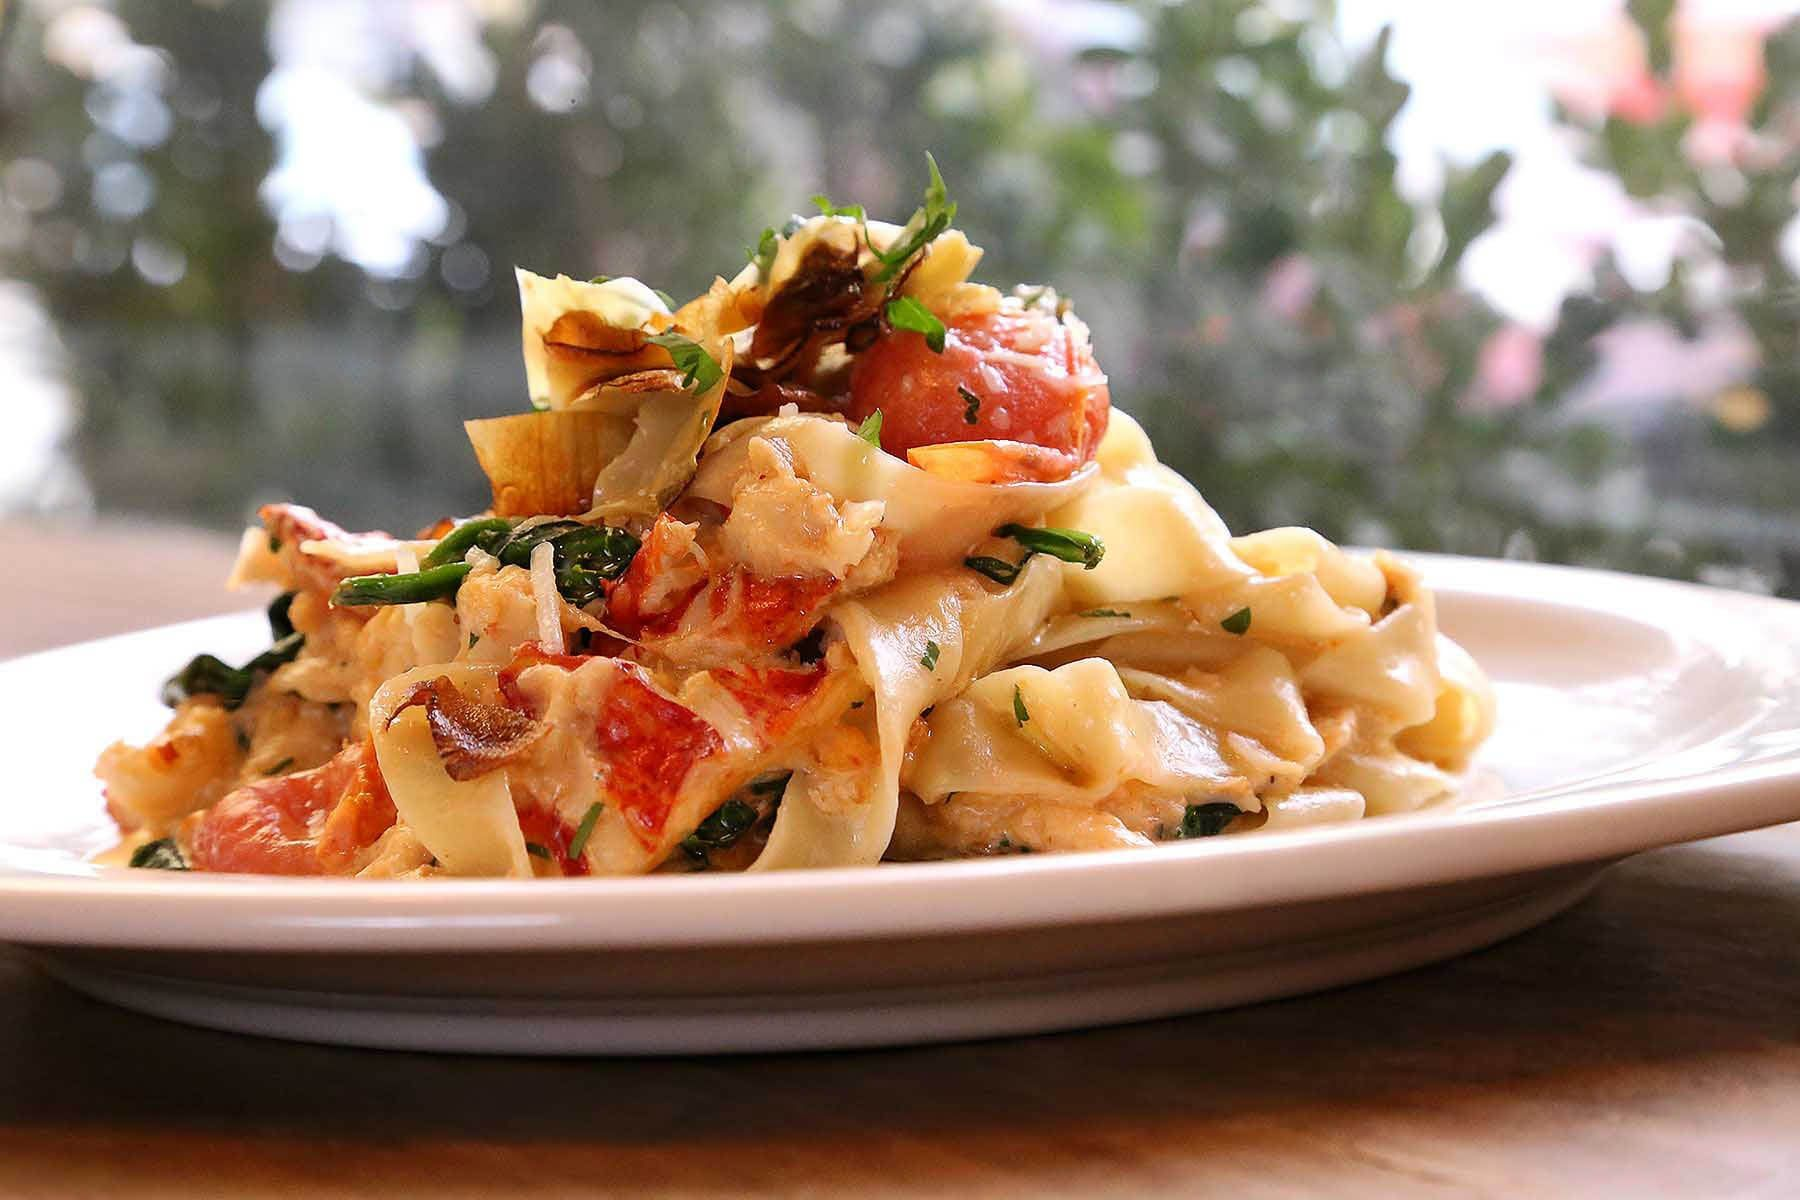 Lou-Manna-Lemon-Tagliatelle-with-Crispy-Artichokes-Spinach-Lobster-Tail